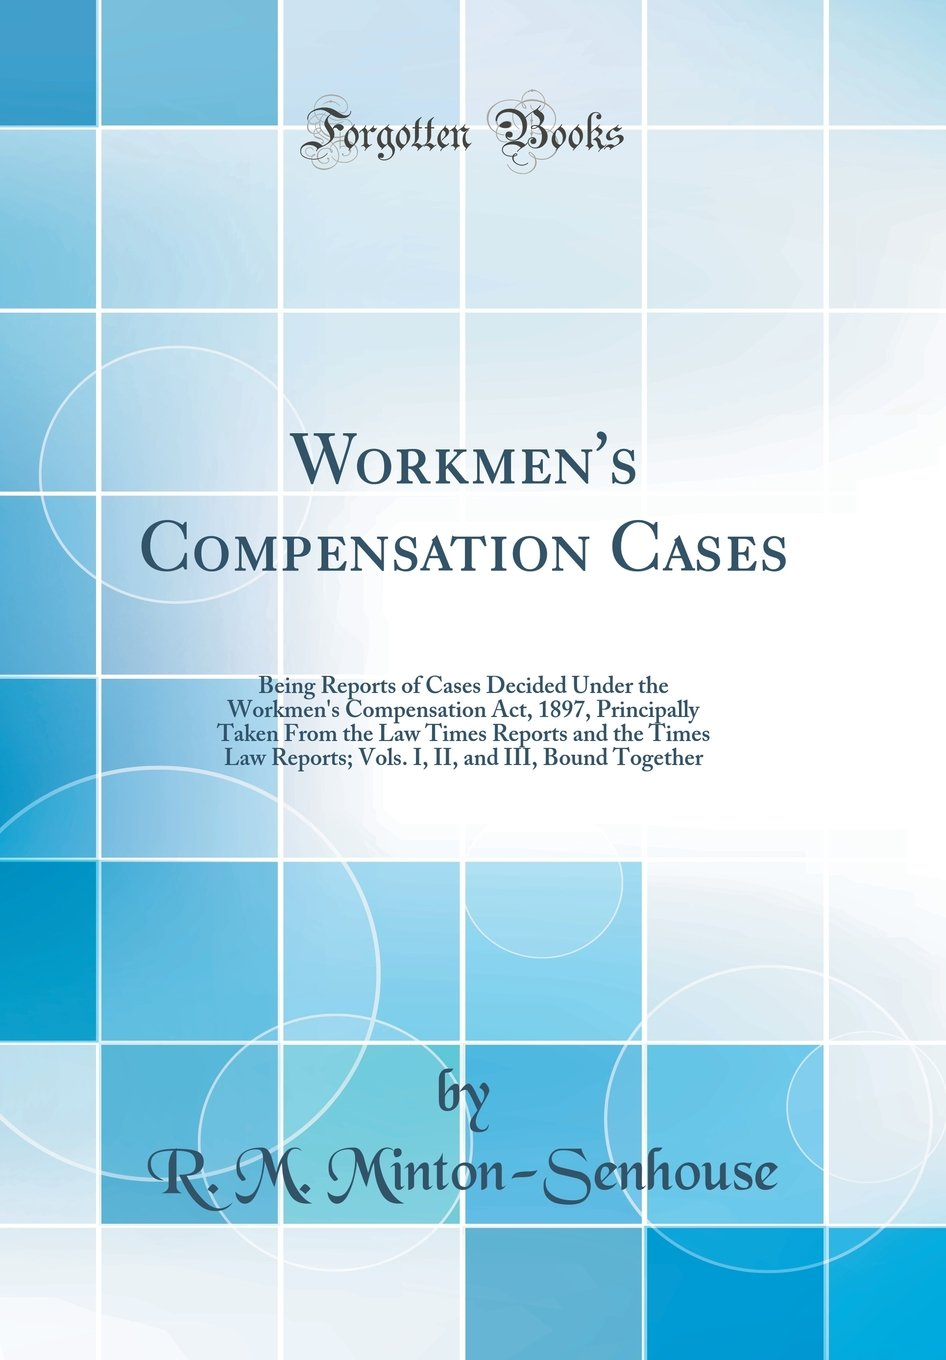 Read Online Workmen's Compensation Cases: Being Reports of Cases Decided Under the Workmen's Compensation ACT, 1897, Principally Taken from the Law Times Reports ... II, and III, Bound Together (Classic Reprint) PDF